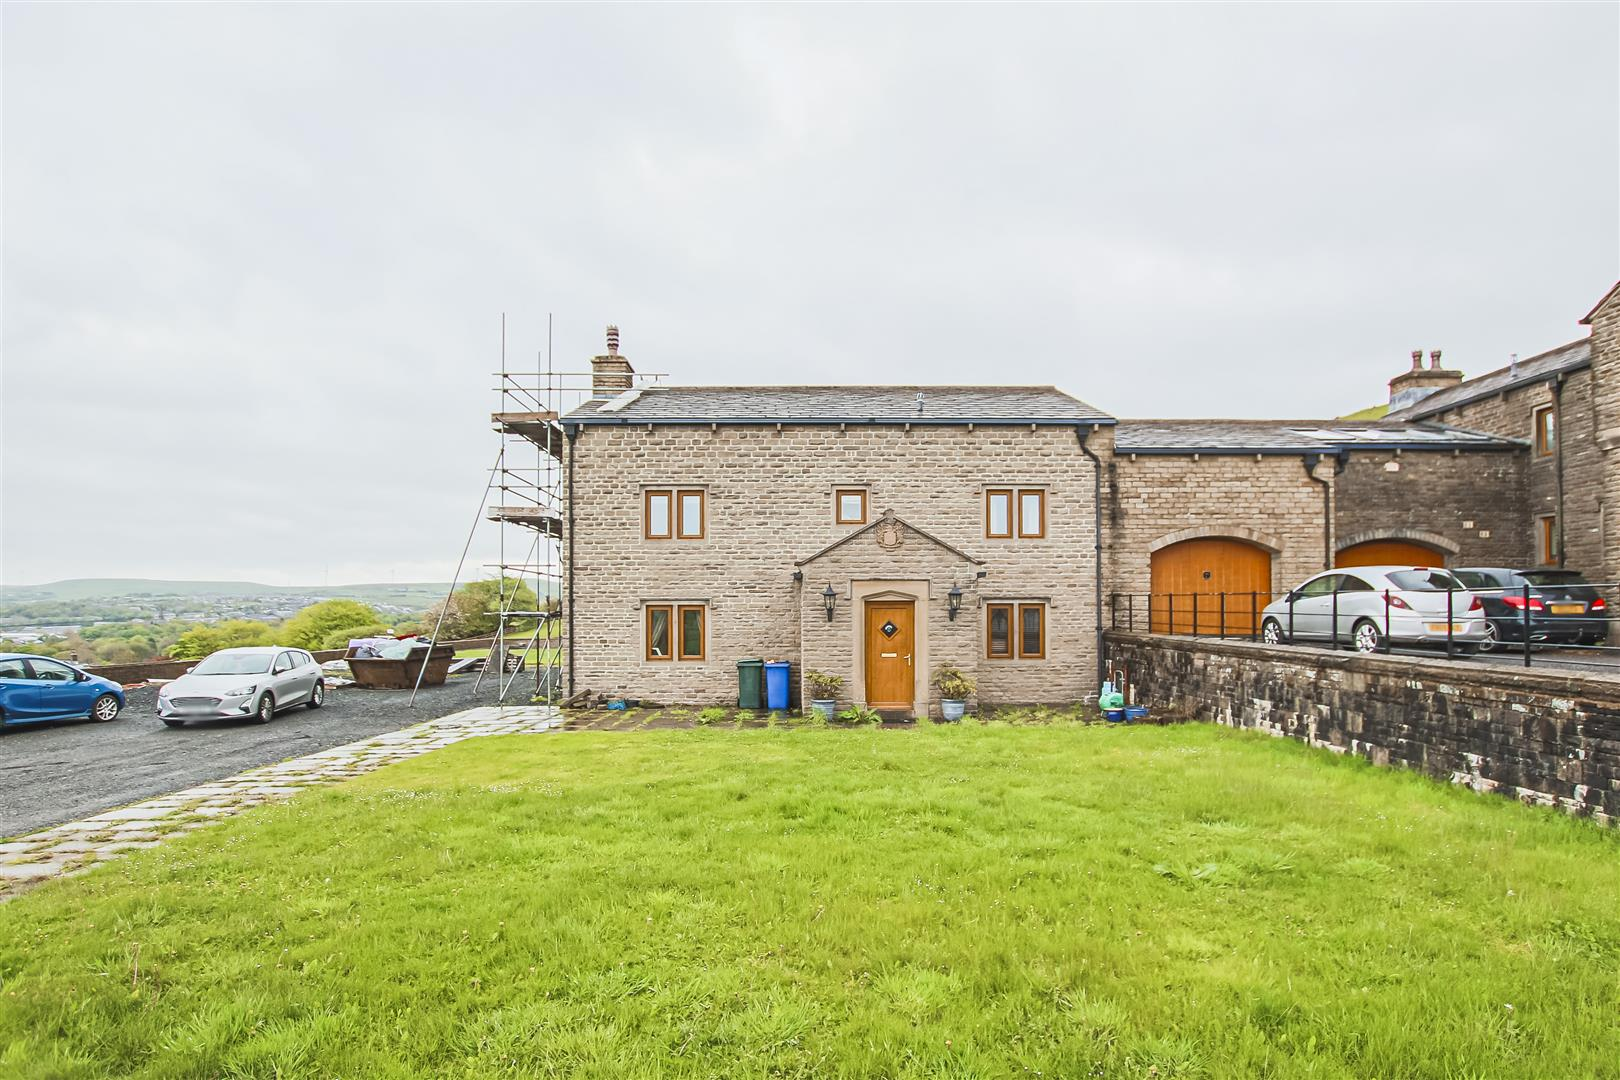 5 Bedroom Barn Conversion For Sale - Image 8